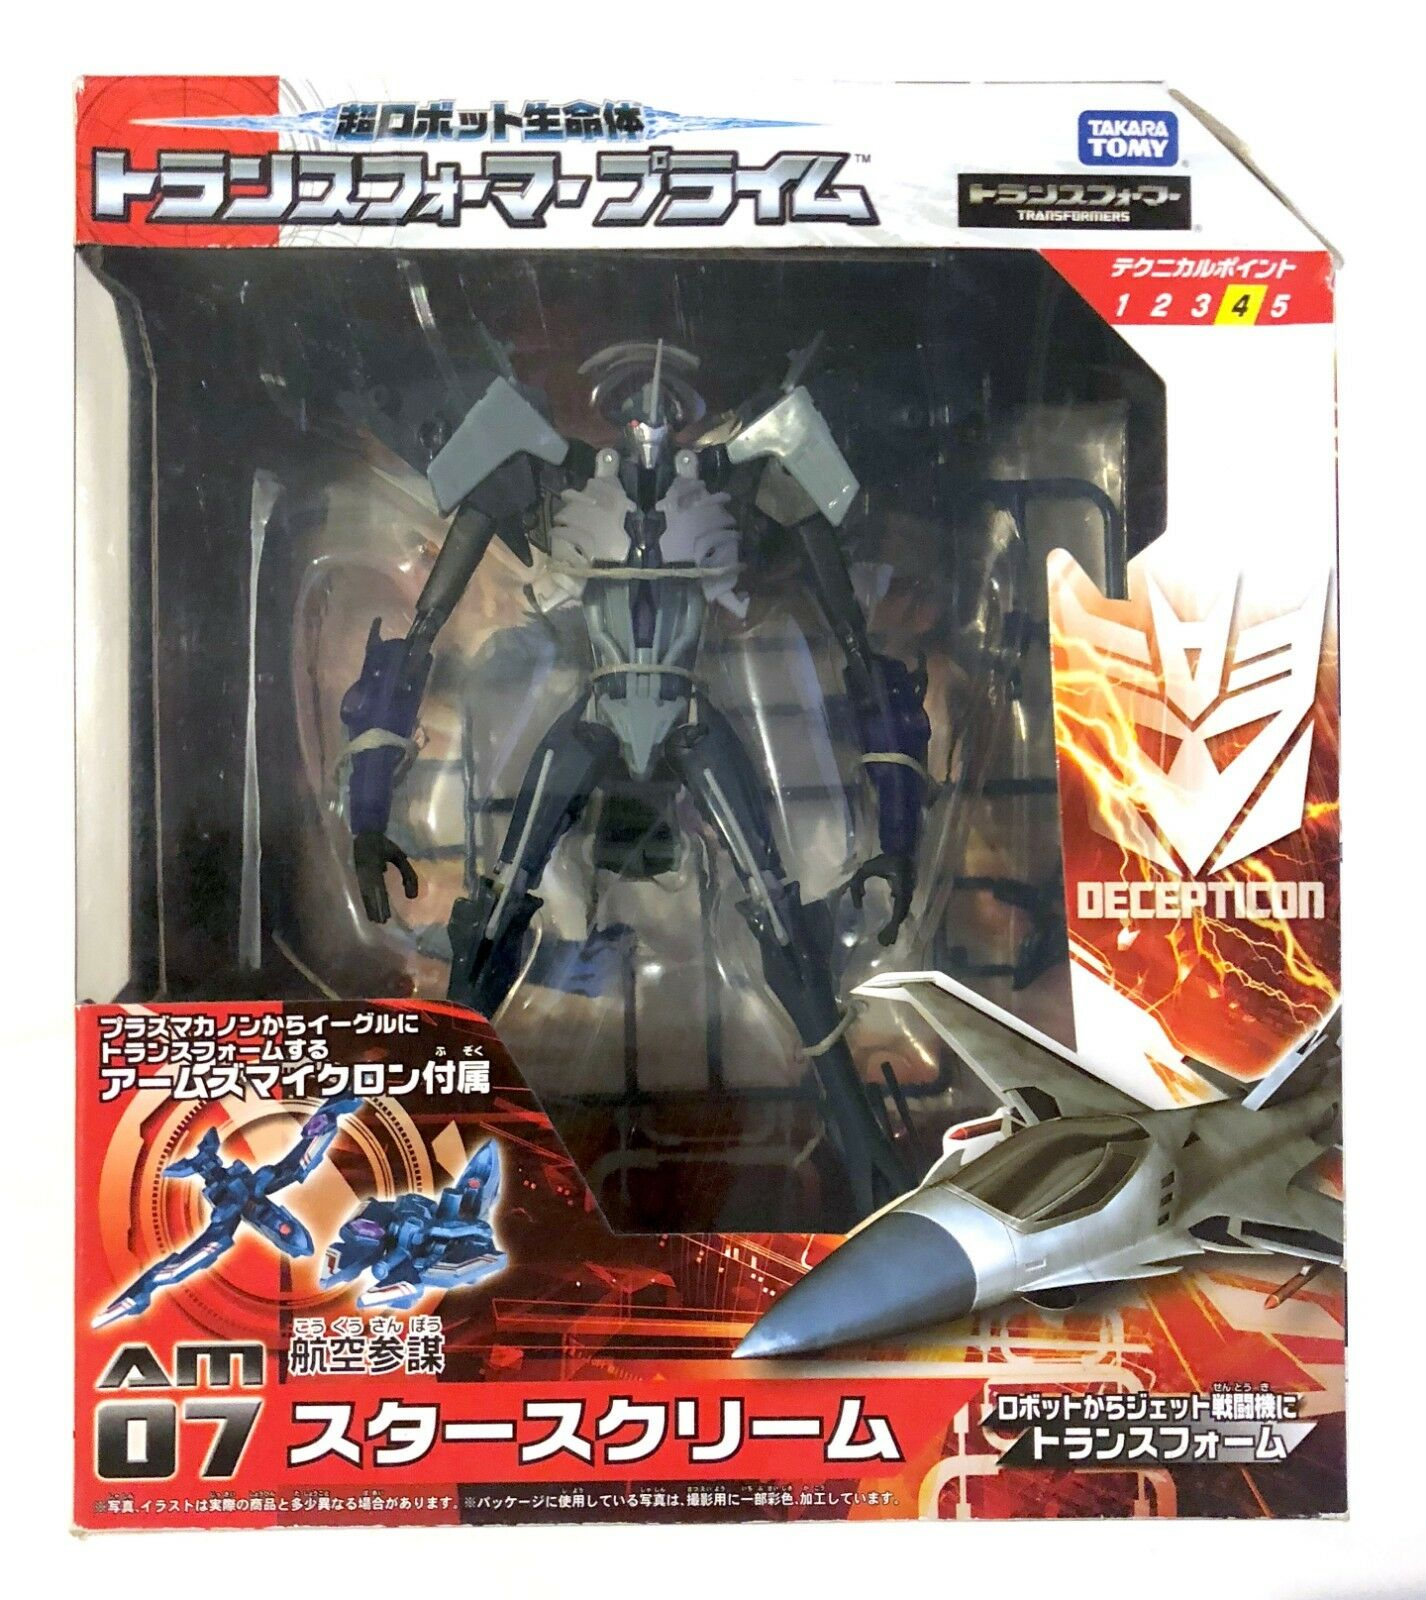 TAKARA Transformers Prime Arms Micron AM07 VOYAGER STARSCREAM NUOVO IN SCATOLA SIGILLATA